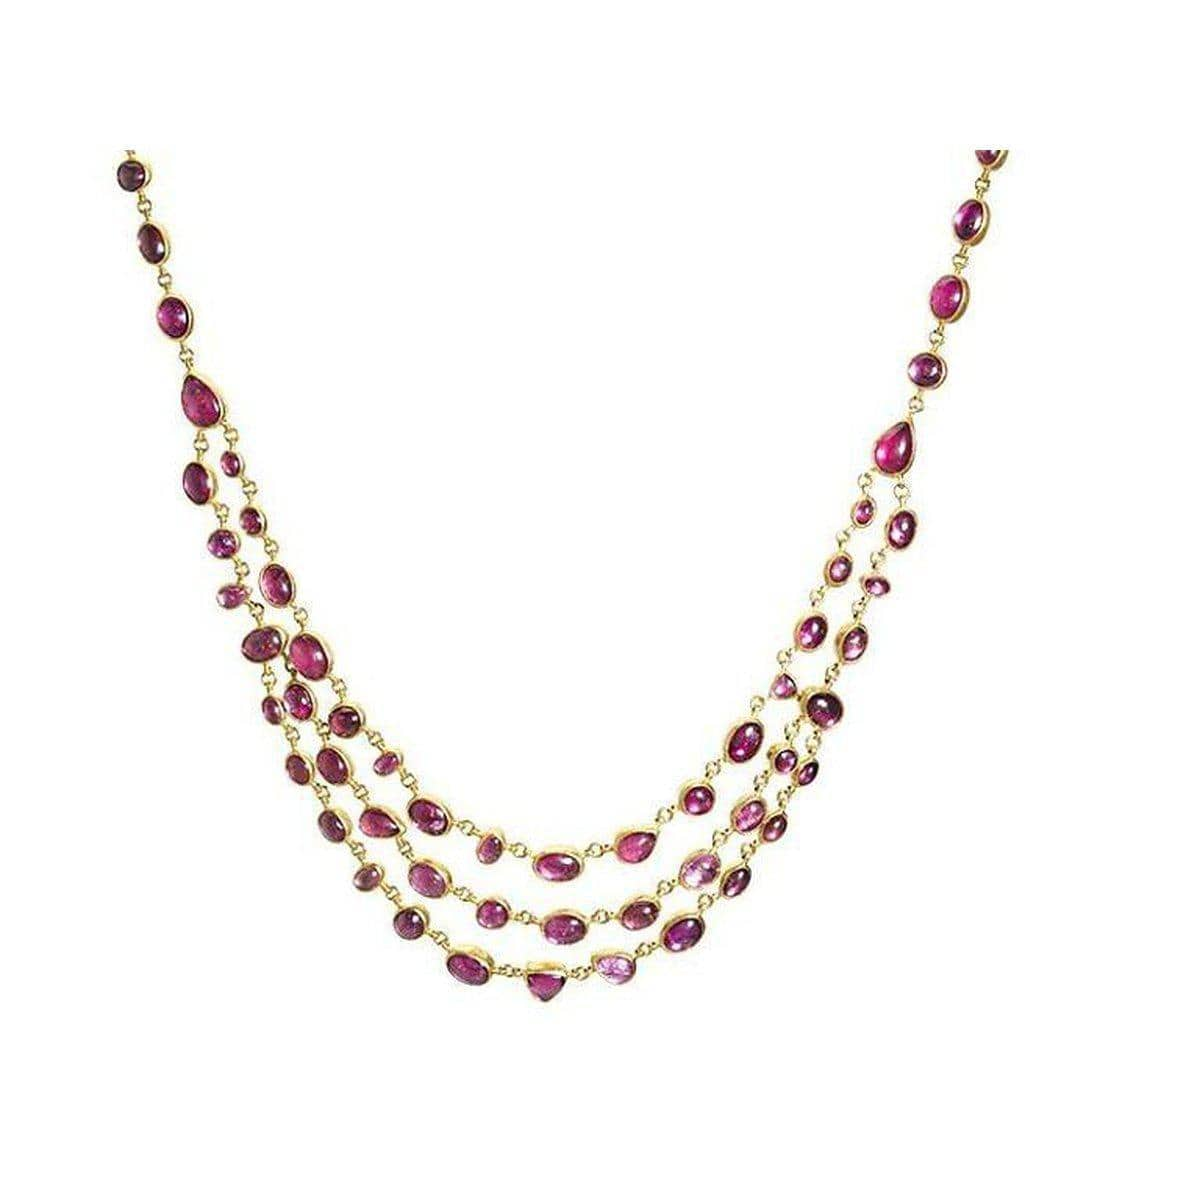 Amulet Hue 24K Gold Pink Tourmaline Necklace - N-U23644-PT